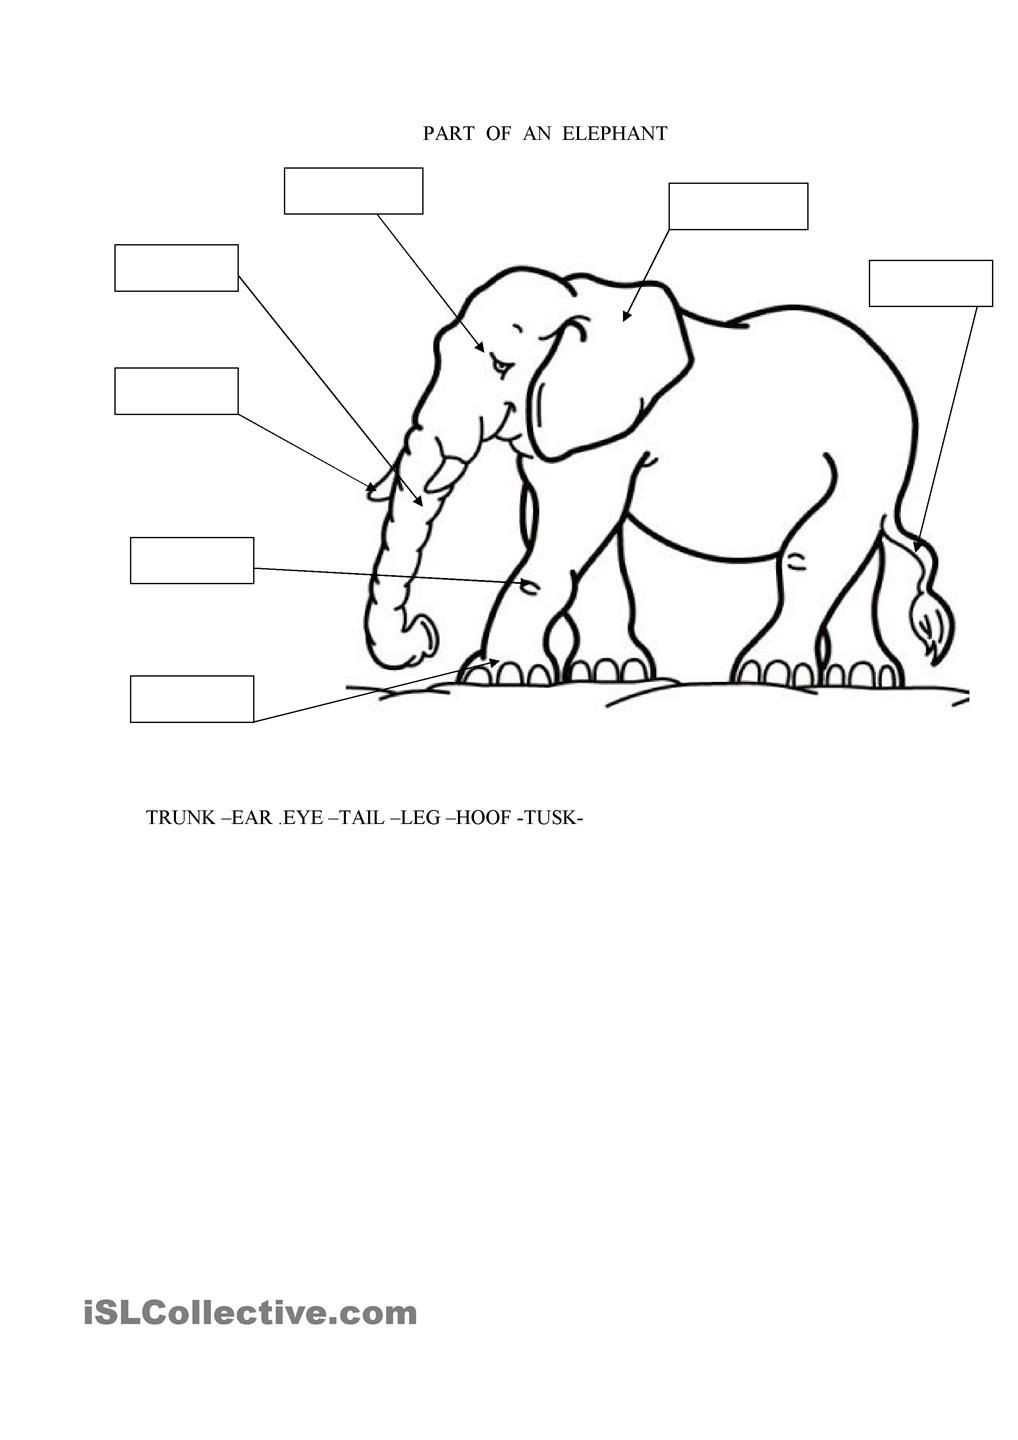 Printable Horse Anatomy Worksheets Parts Of An Elephant